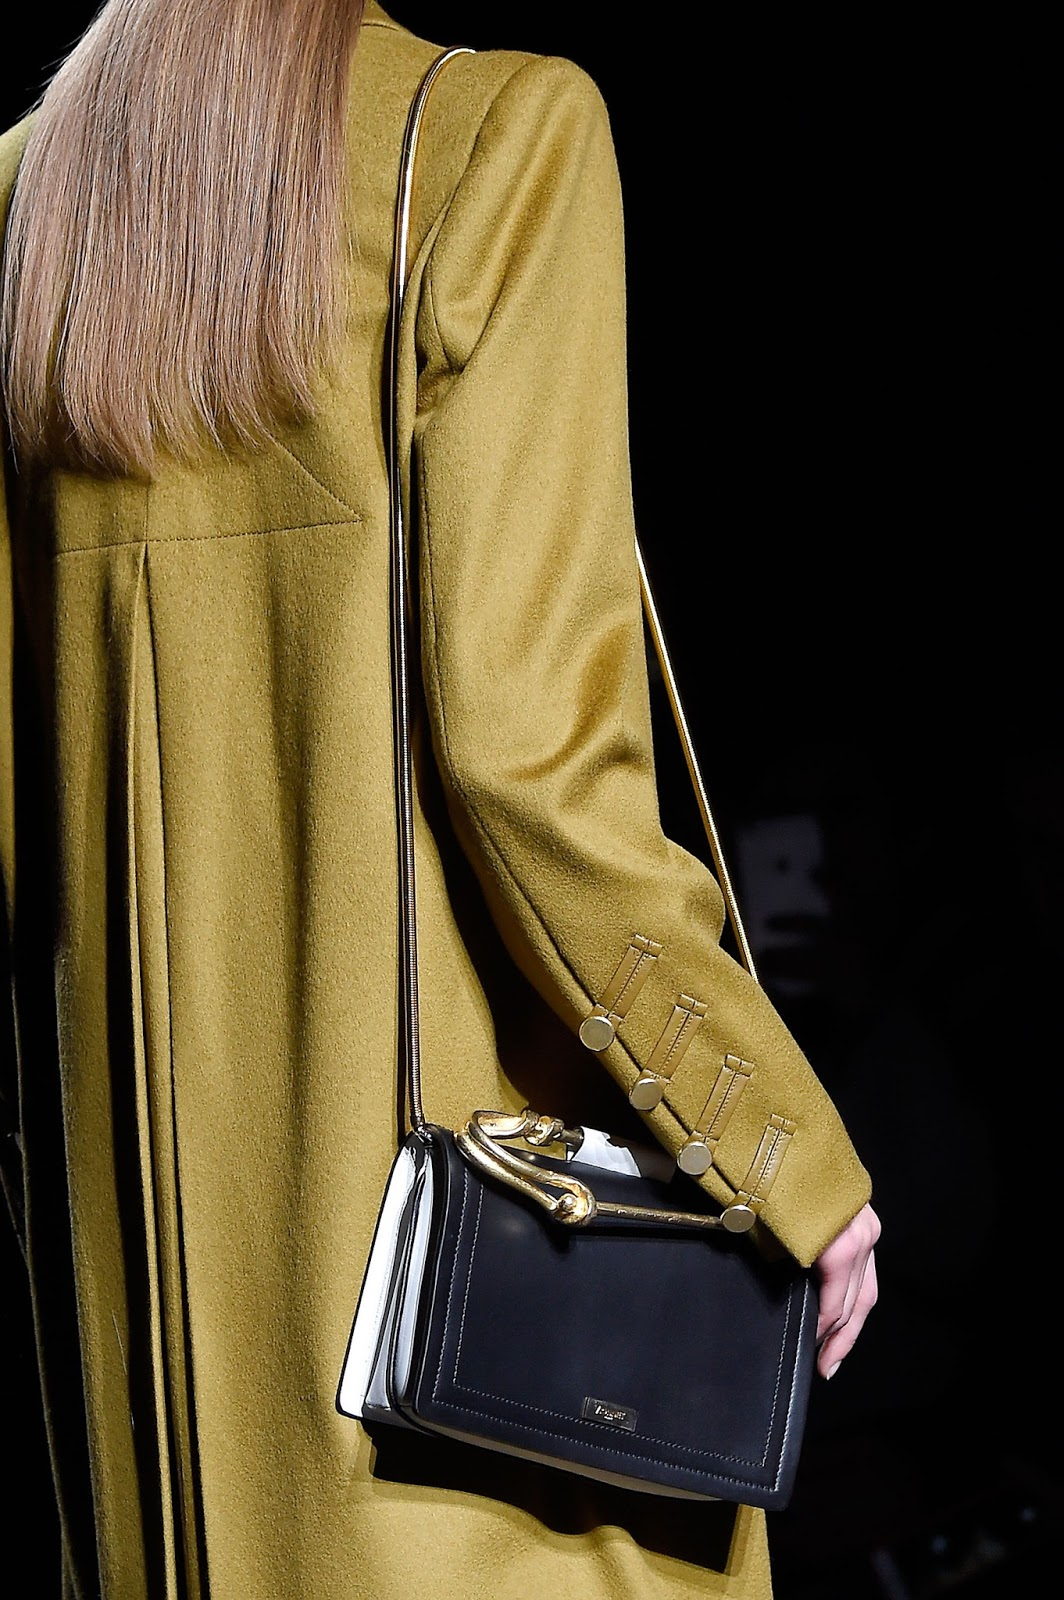 Vionnet Fall/Winter 2016 collection via www.fashionedbylove.co.uk